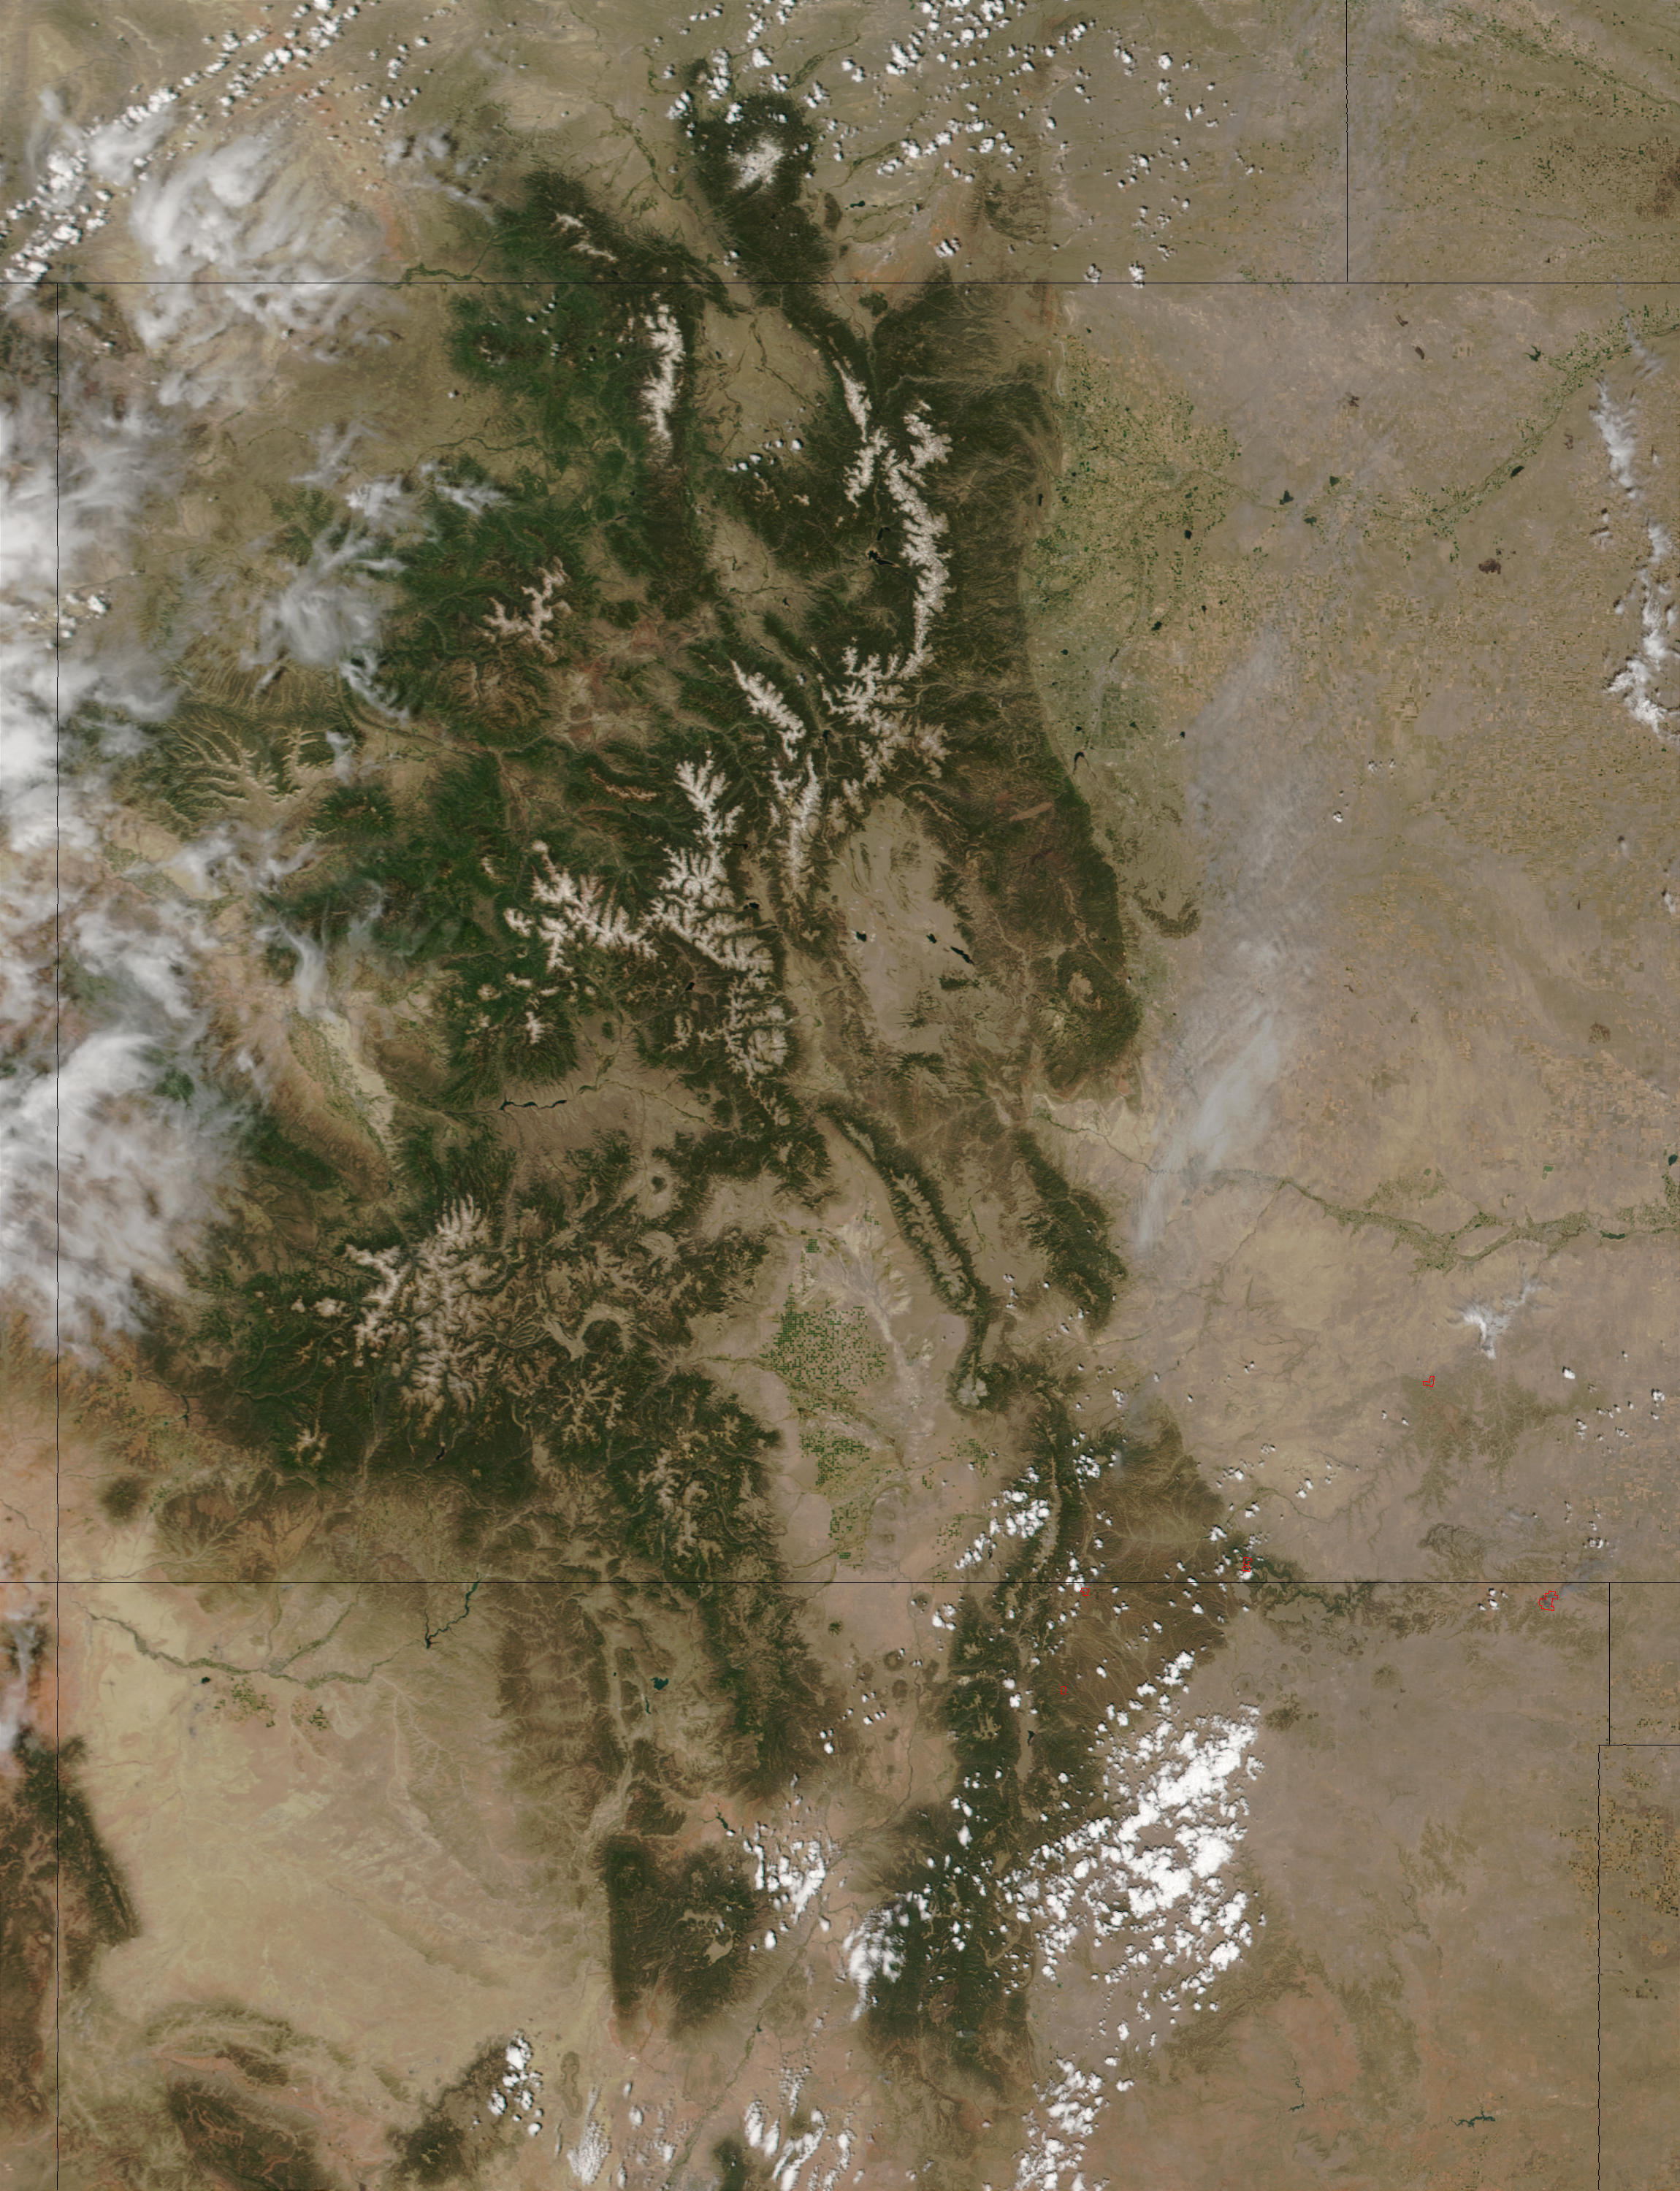 Fires in Colorado and New Mexico